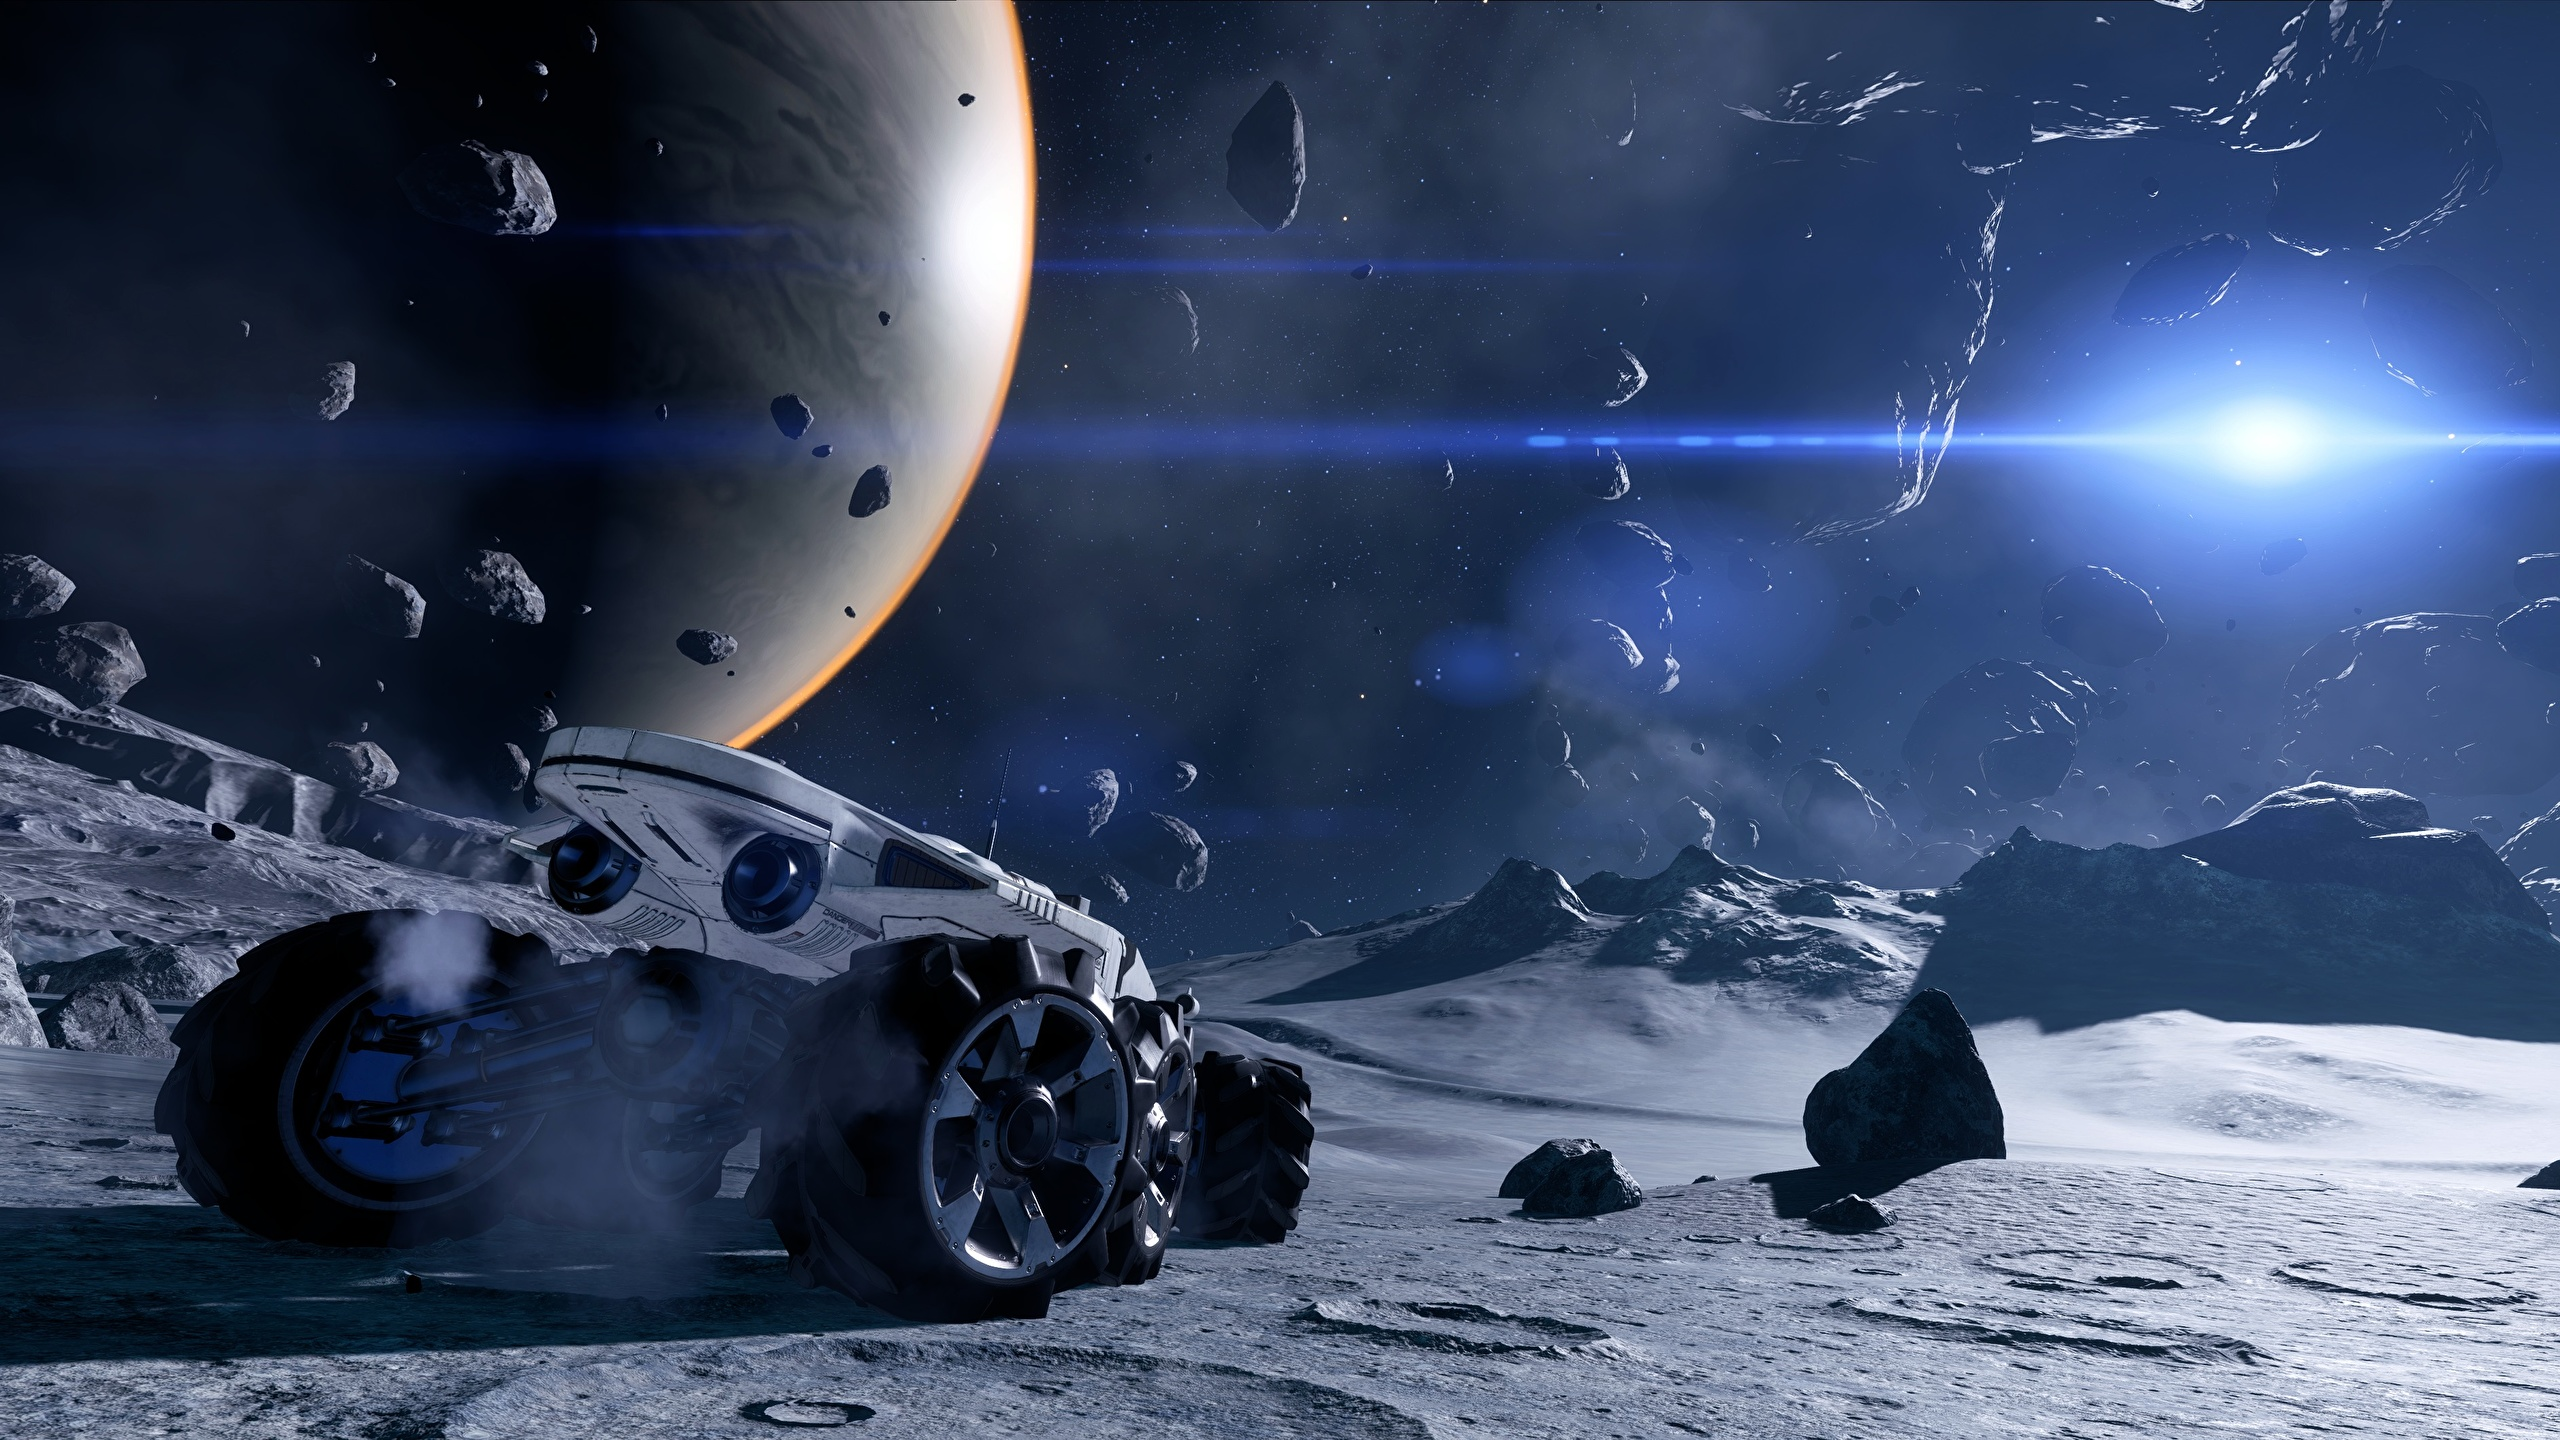 Photos Mass Effect Planets Surface Of Planets Andromeda 3d 2560x1440